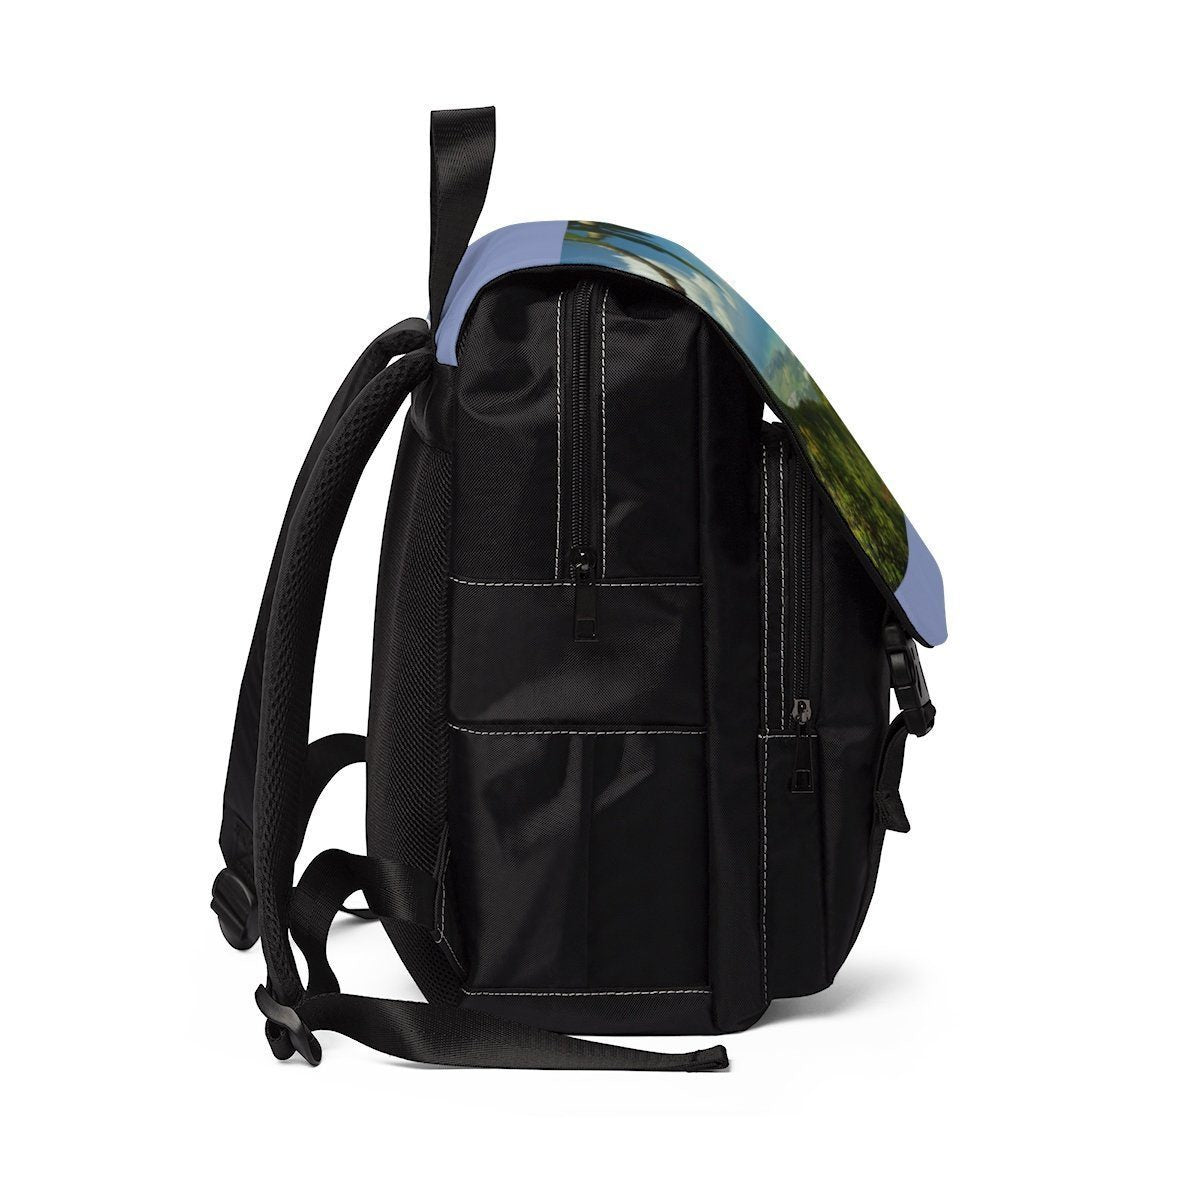 Unisex Casual Shoulder Backpack - Awesome view Three Peaks tower in EYNF Bags Printify